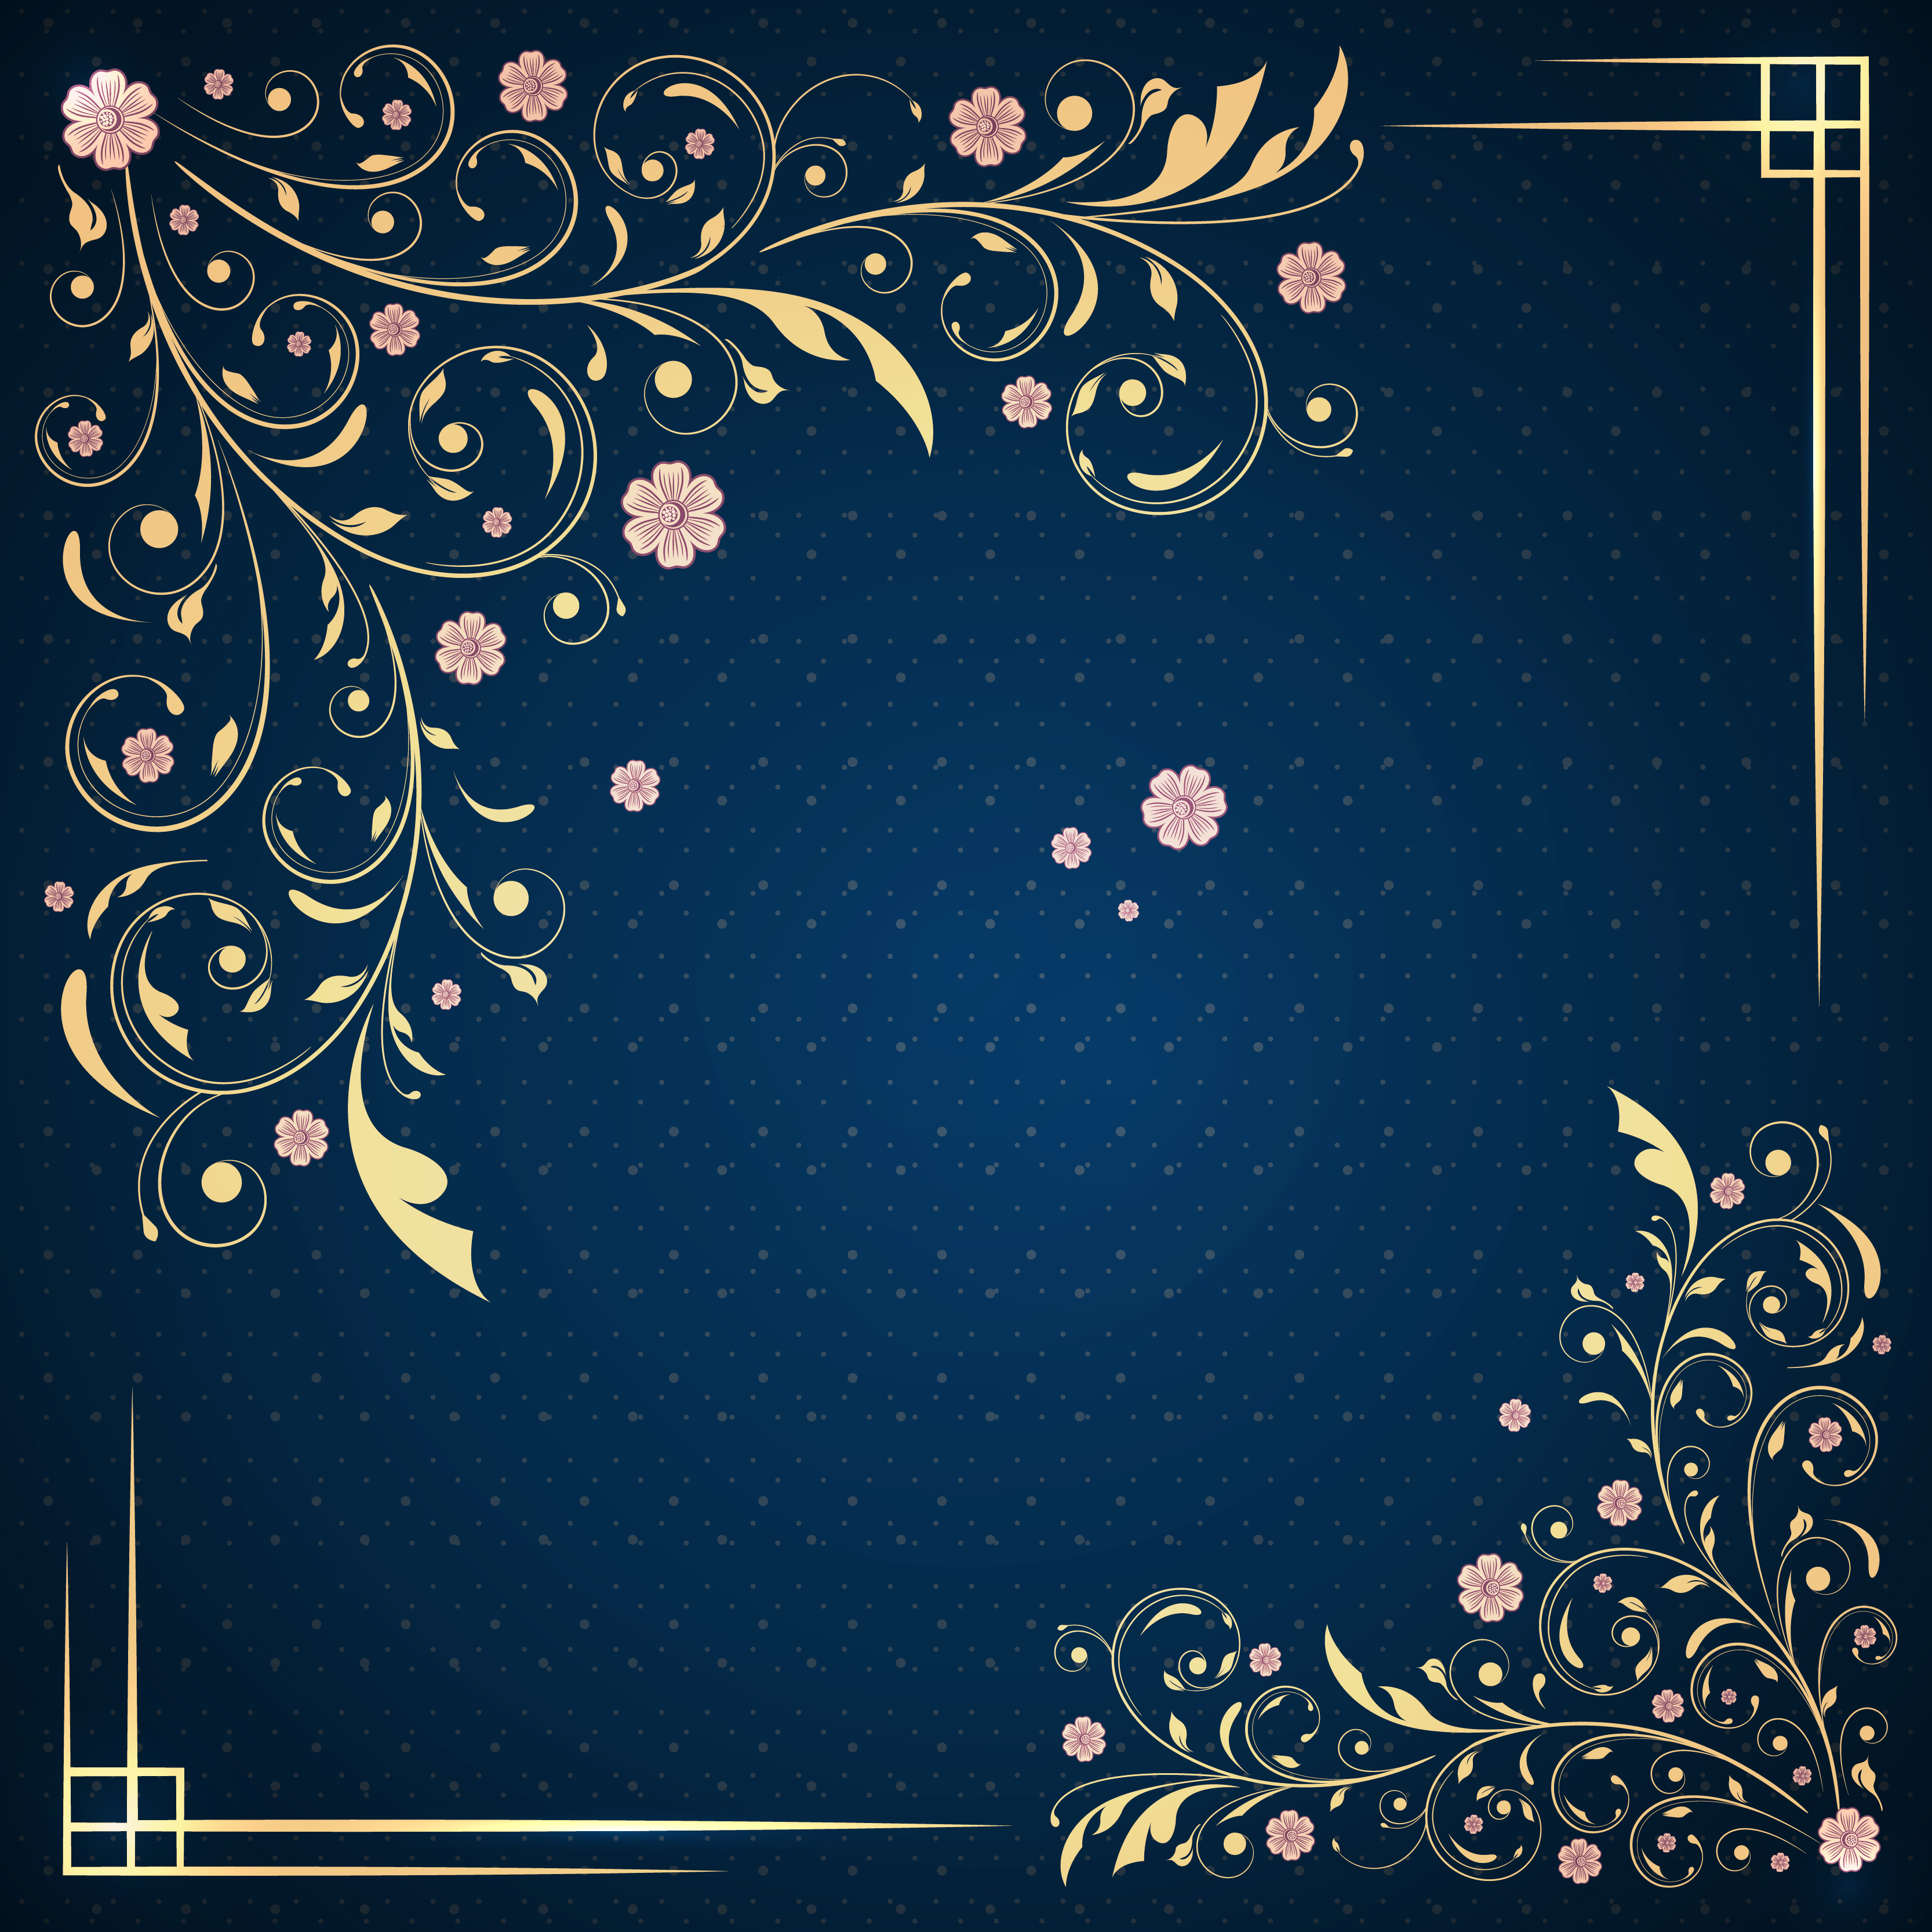 Wedding Invitation Backgrounds: Annual Wedding Invitations Blue Pattern Background